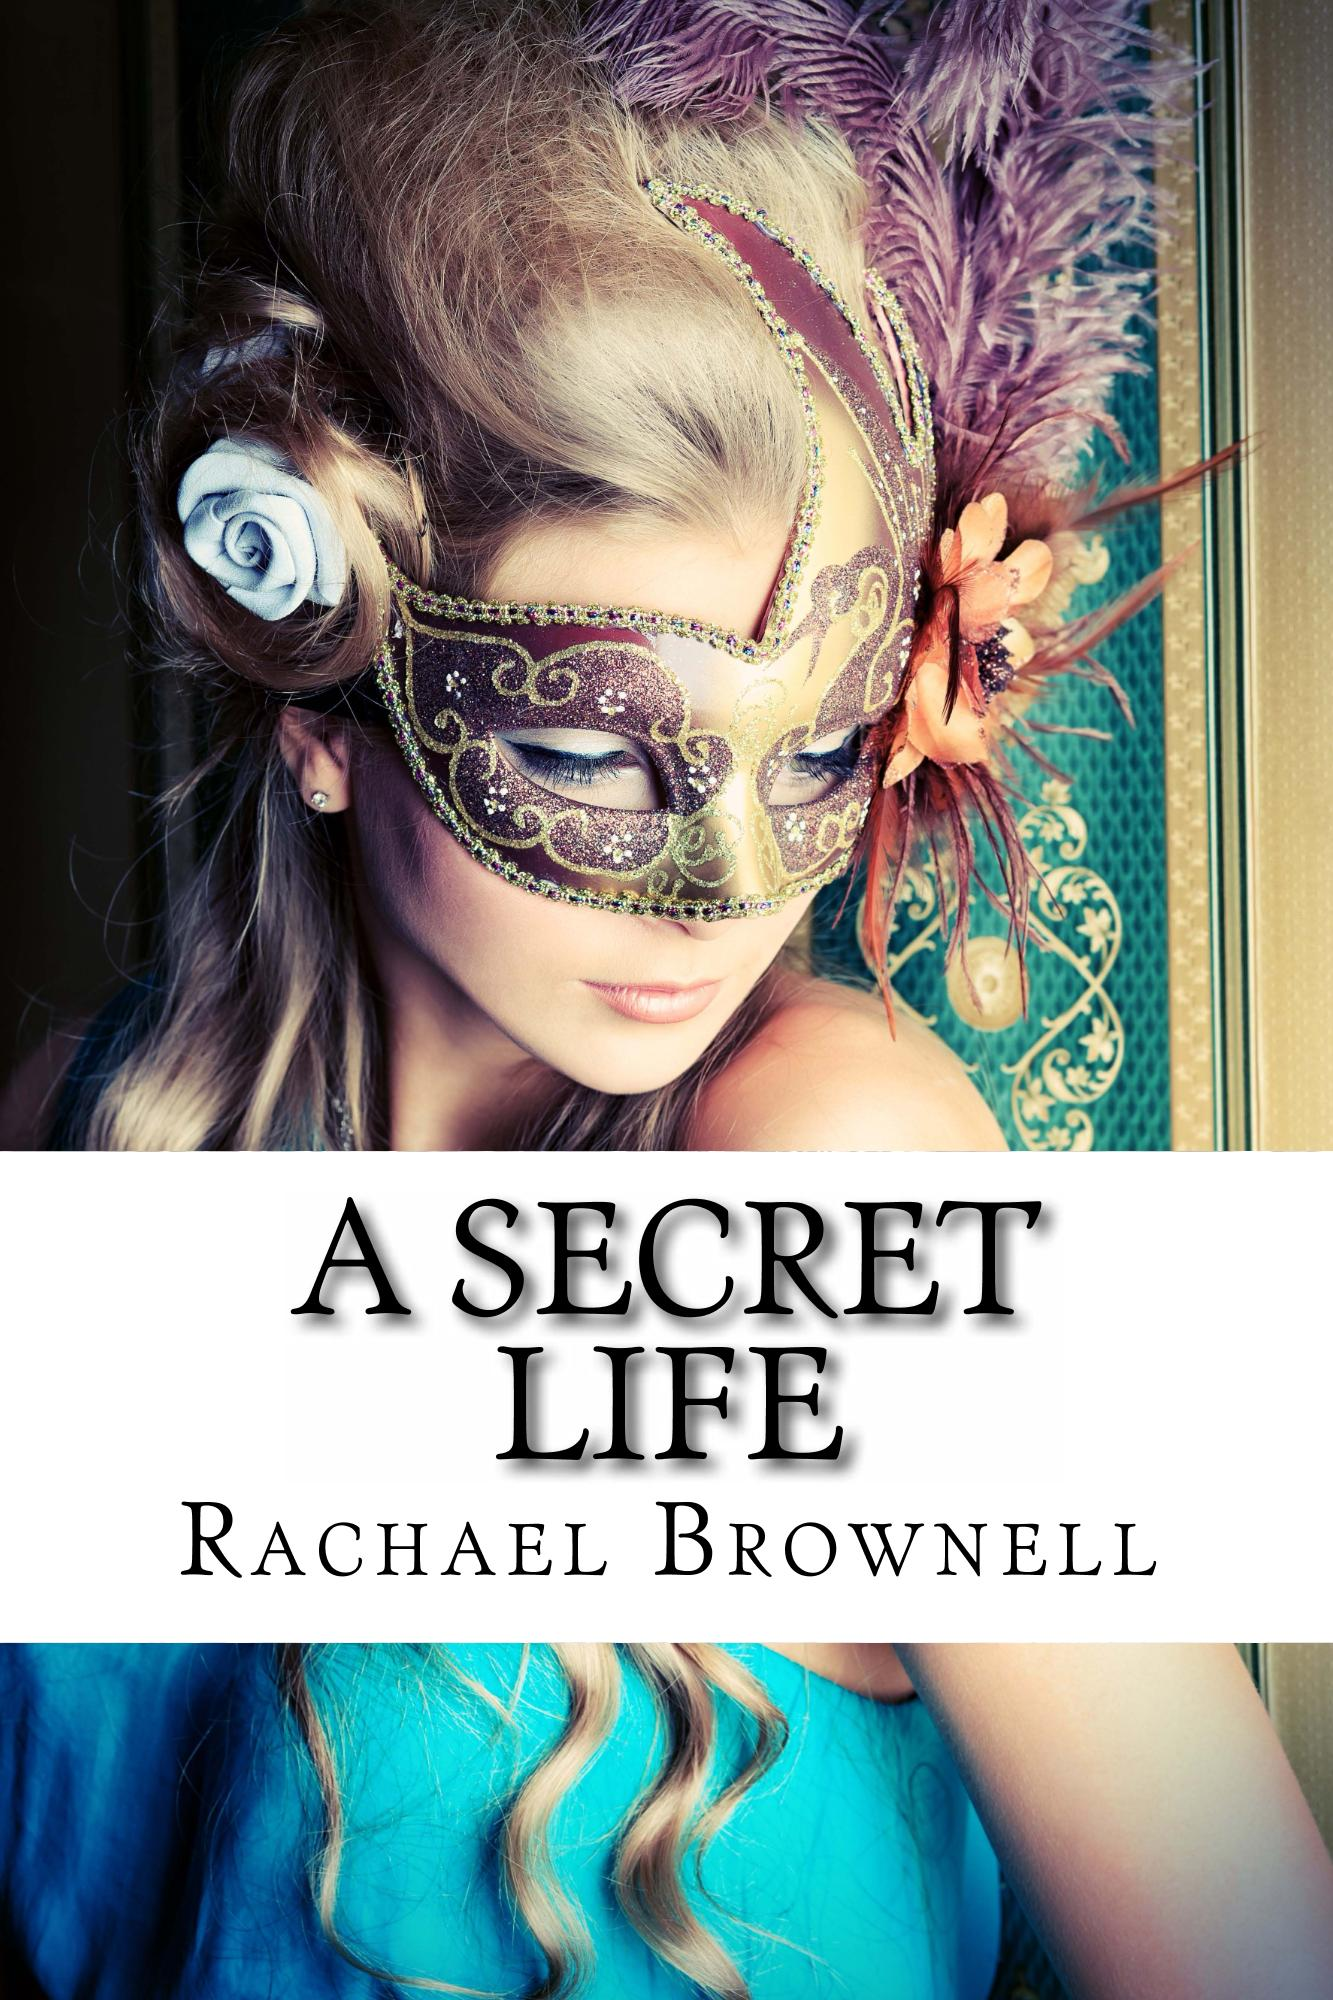 A Secret Life Rachael Brownell